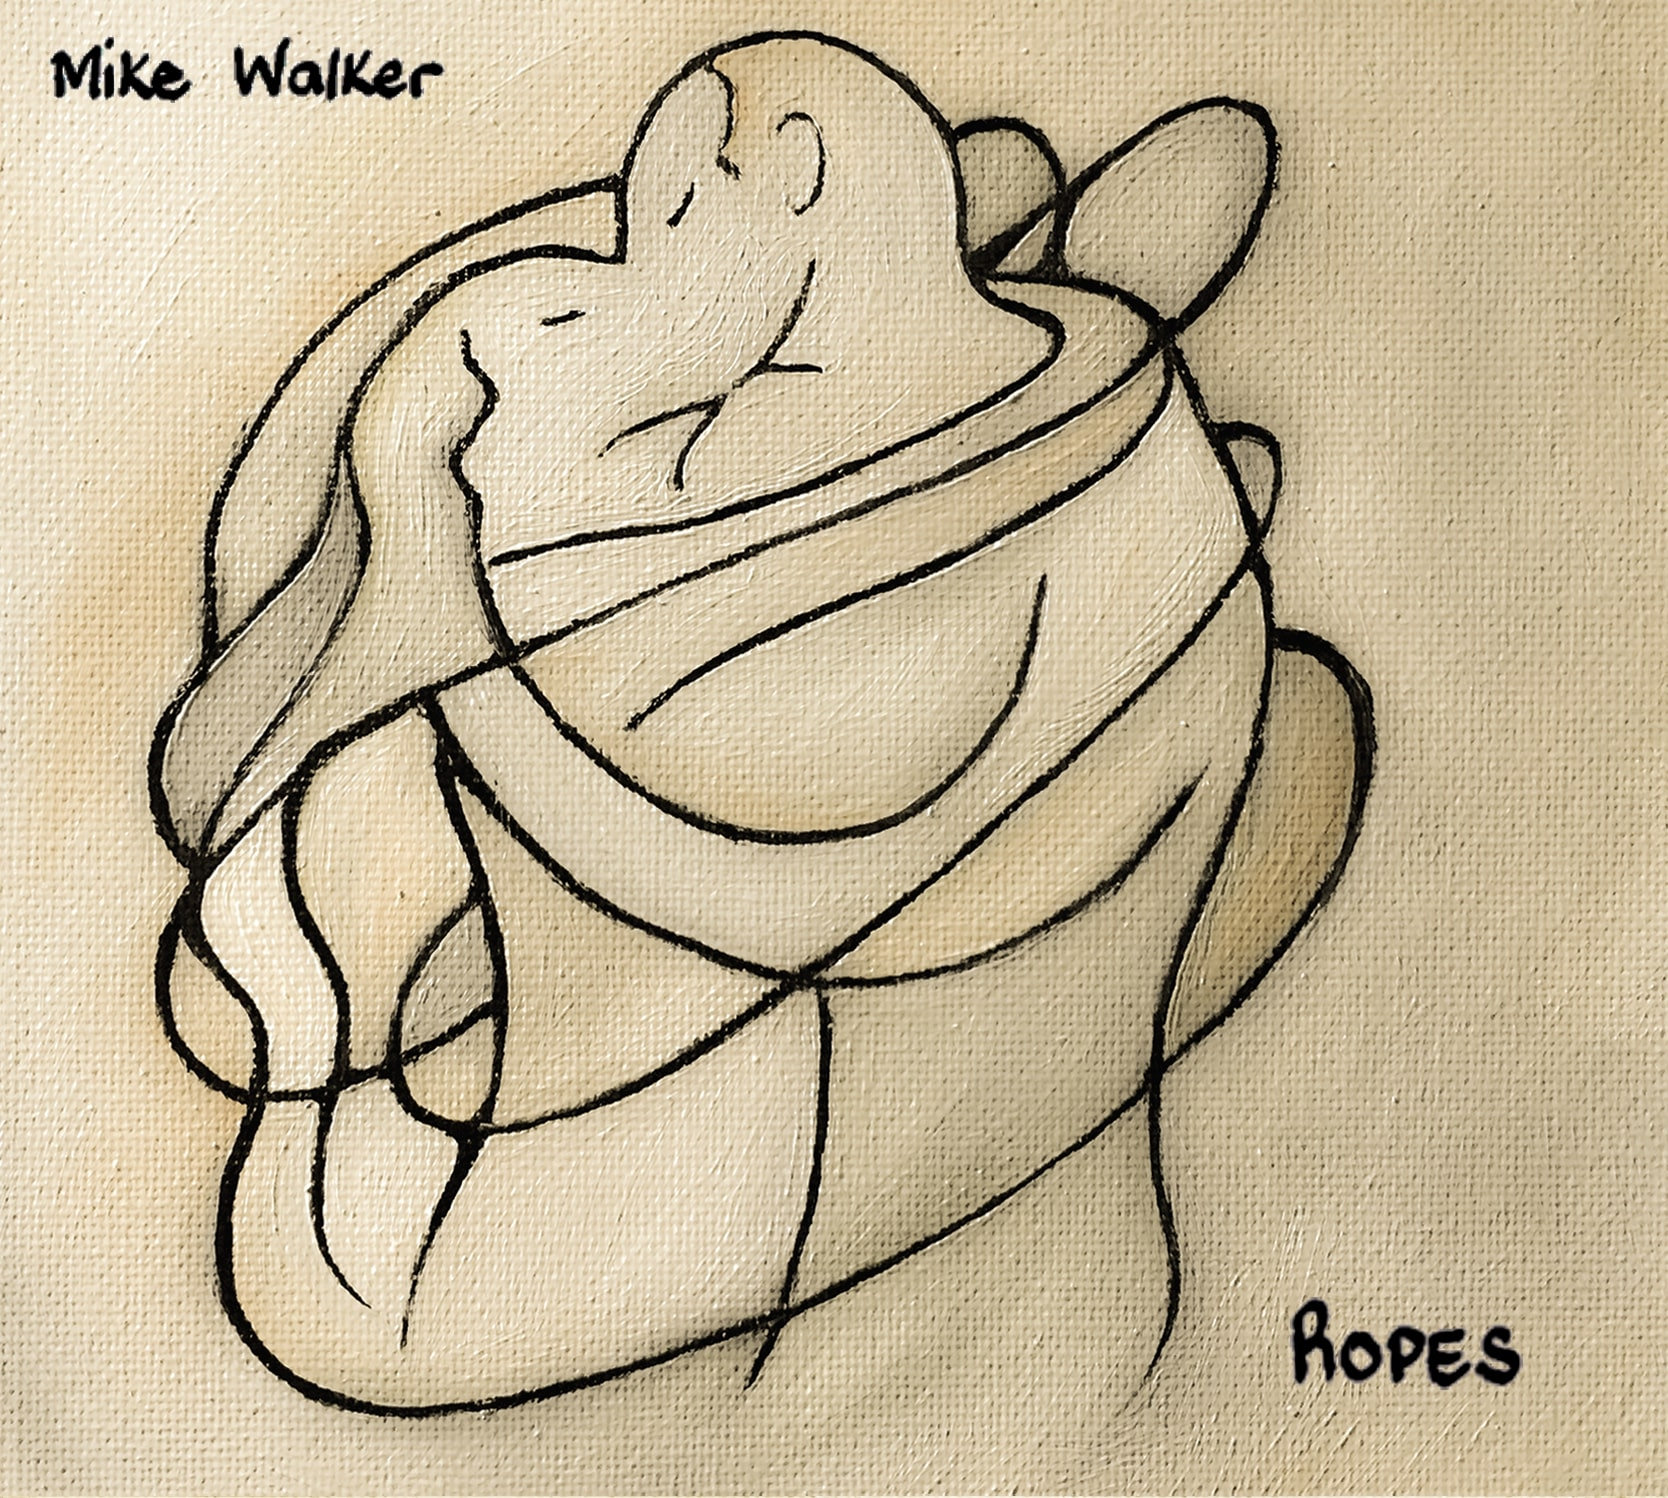 Jazz guitarist Mike Walker releases 'Ropes' …